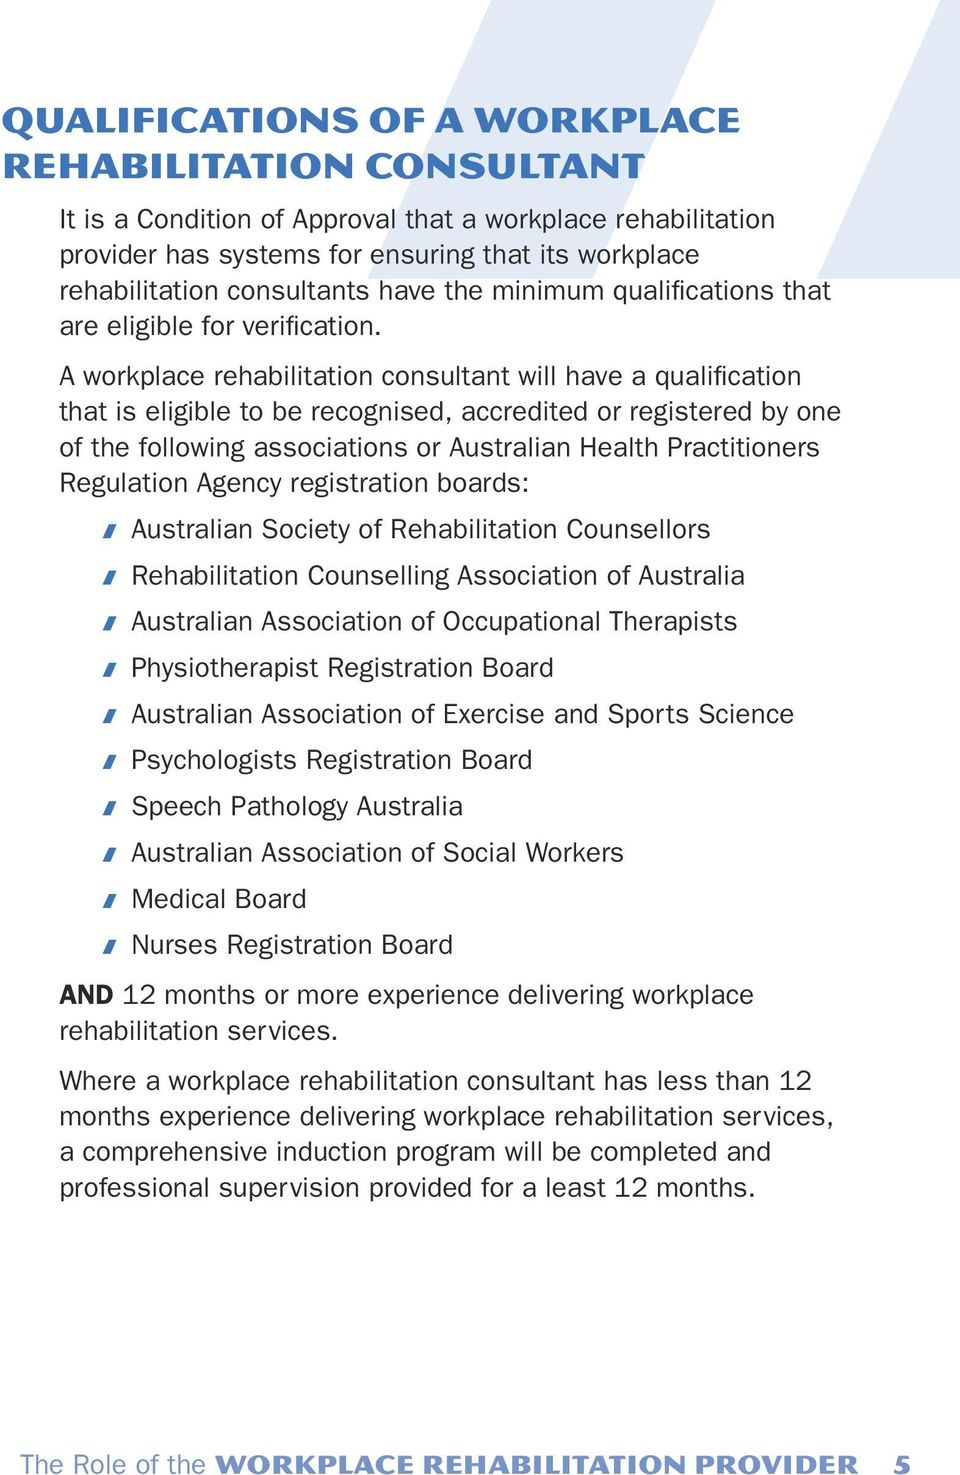 A workplace rehabilitation consultant will have a qualification that is eligible to be recognised, accredited or registered by one of the following associations or Australian Health Practitioners